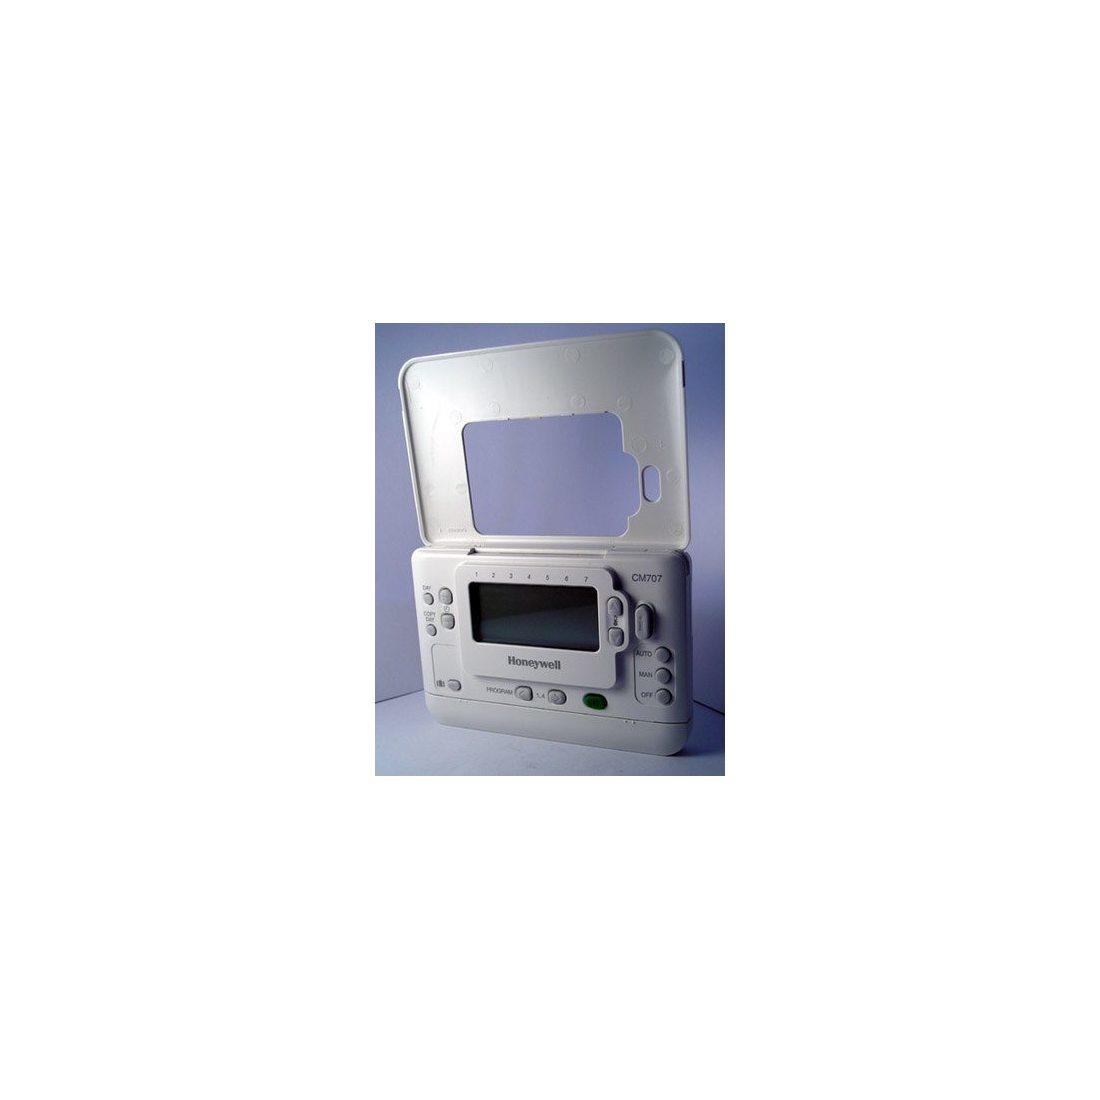 Honeywell CMT707A1003Thermostat programmable hebdomadaire